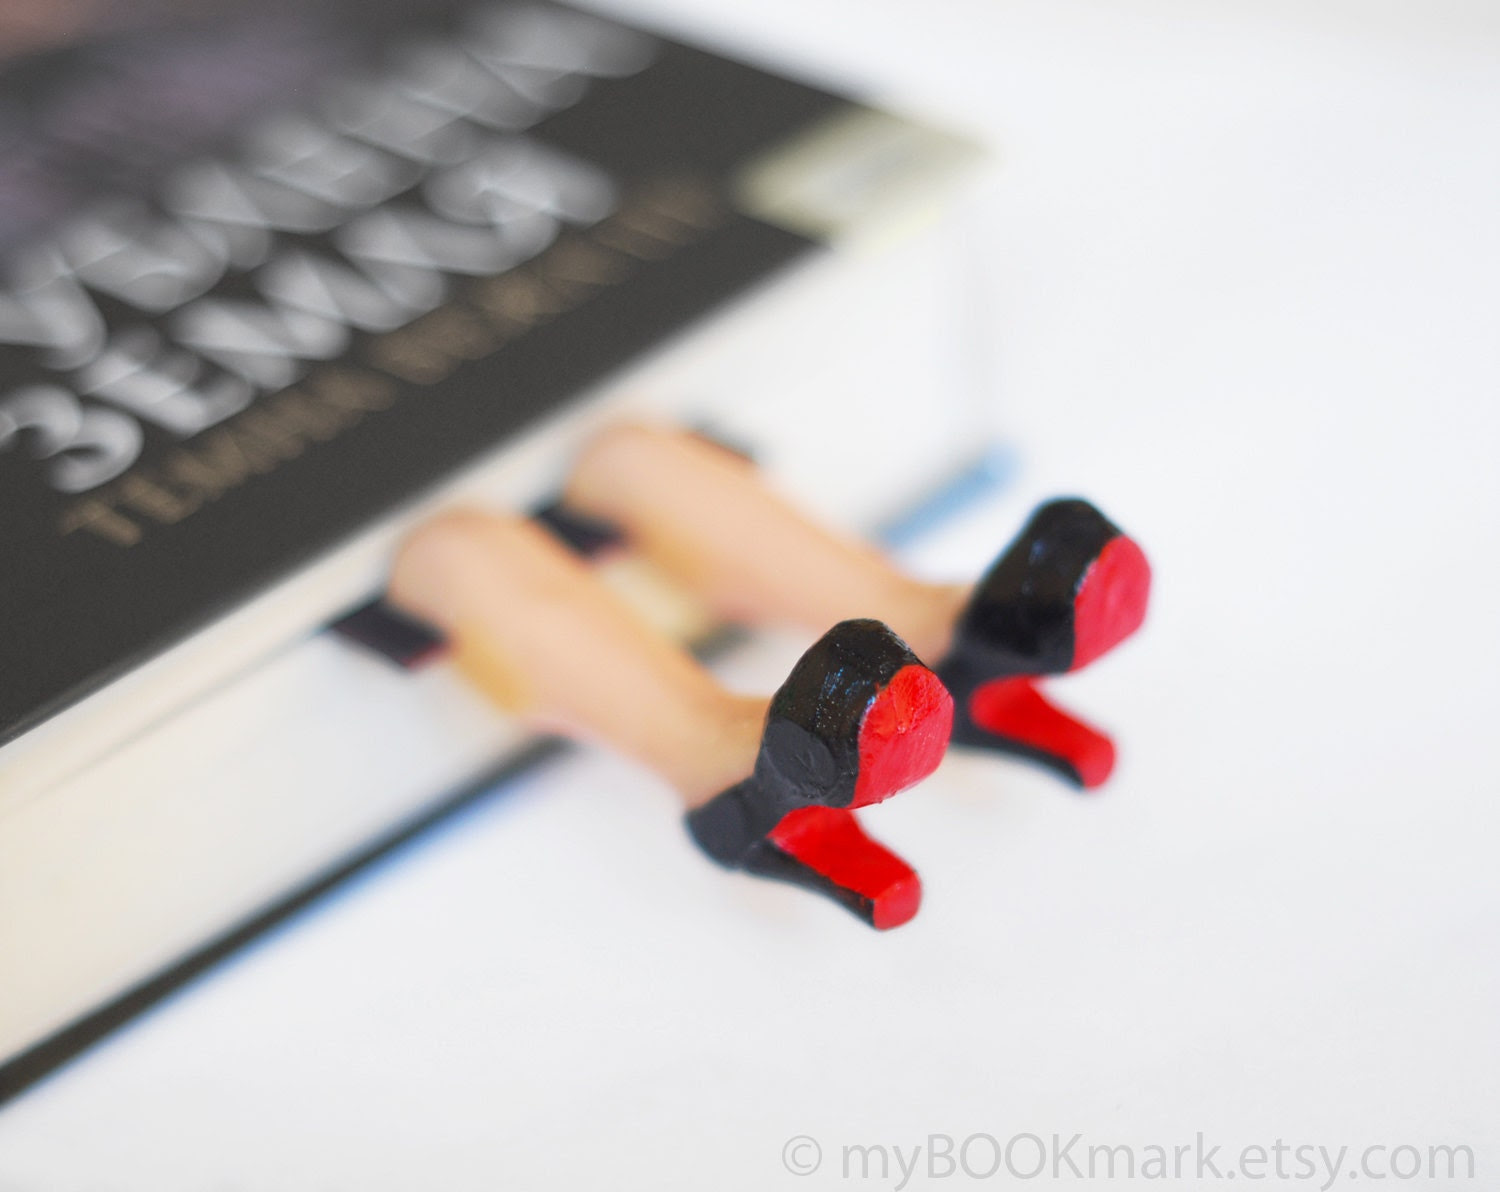 Legs in the book. Louboutin shoes. Elegant high fashion gift. Black and red. Desk accessory for her. ohtteam - MyBookmark